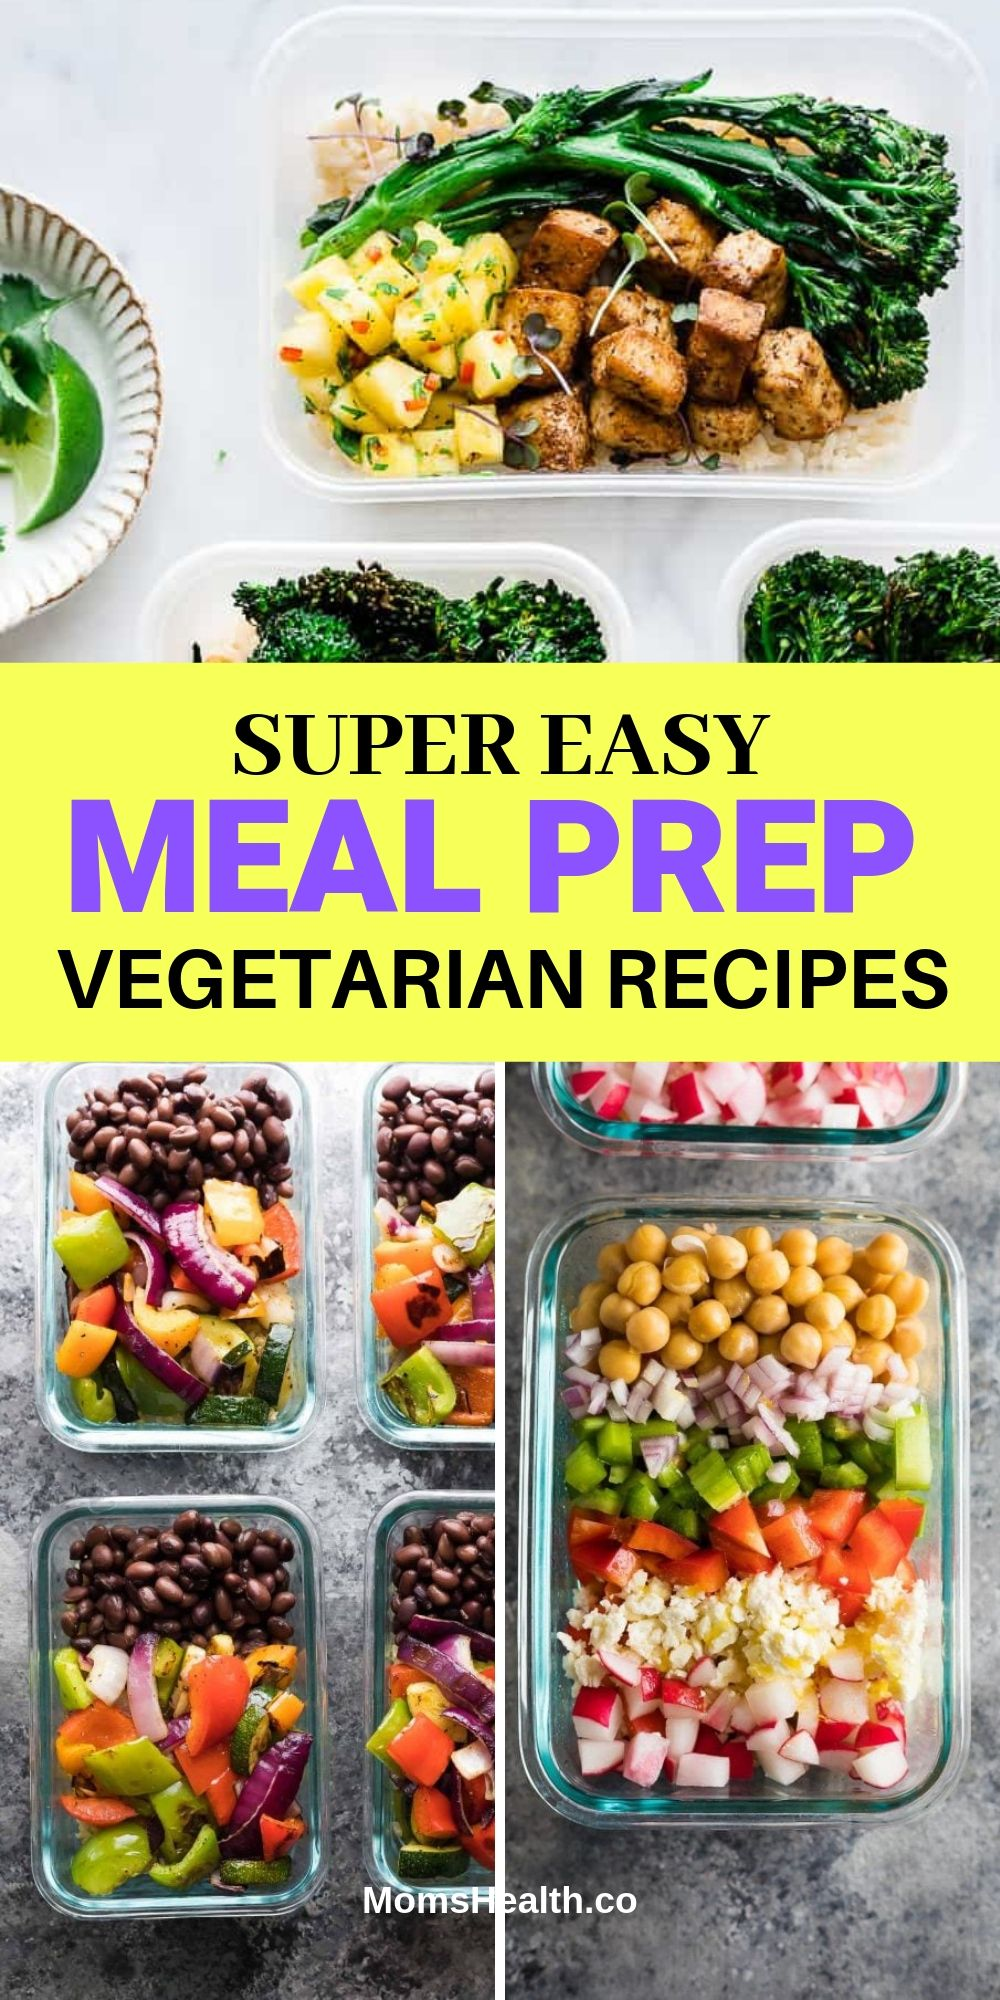 15 Easy and Cheap Vegetarian Meal Prep Recipes for Weight Loss